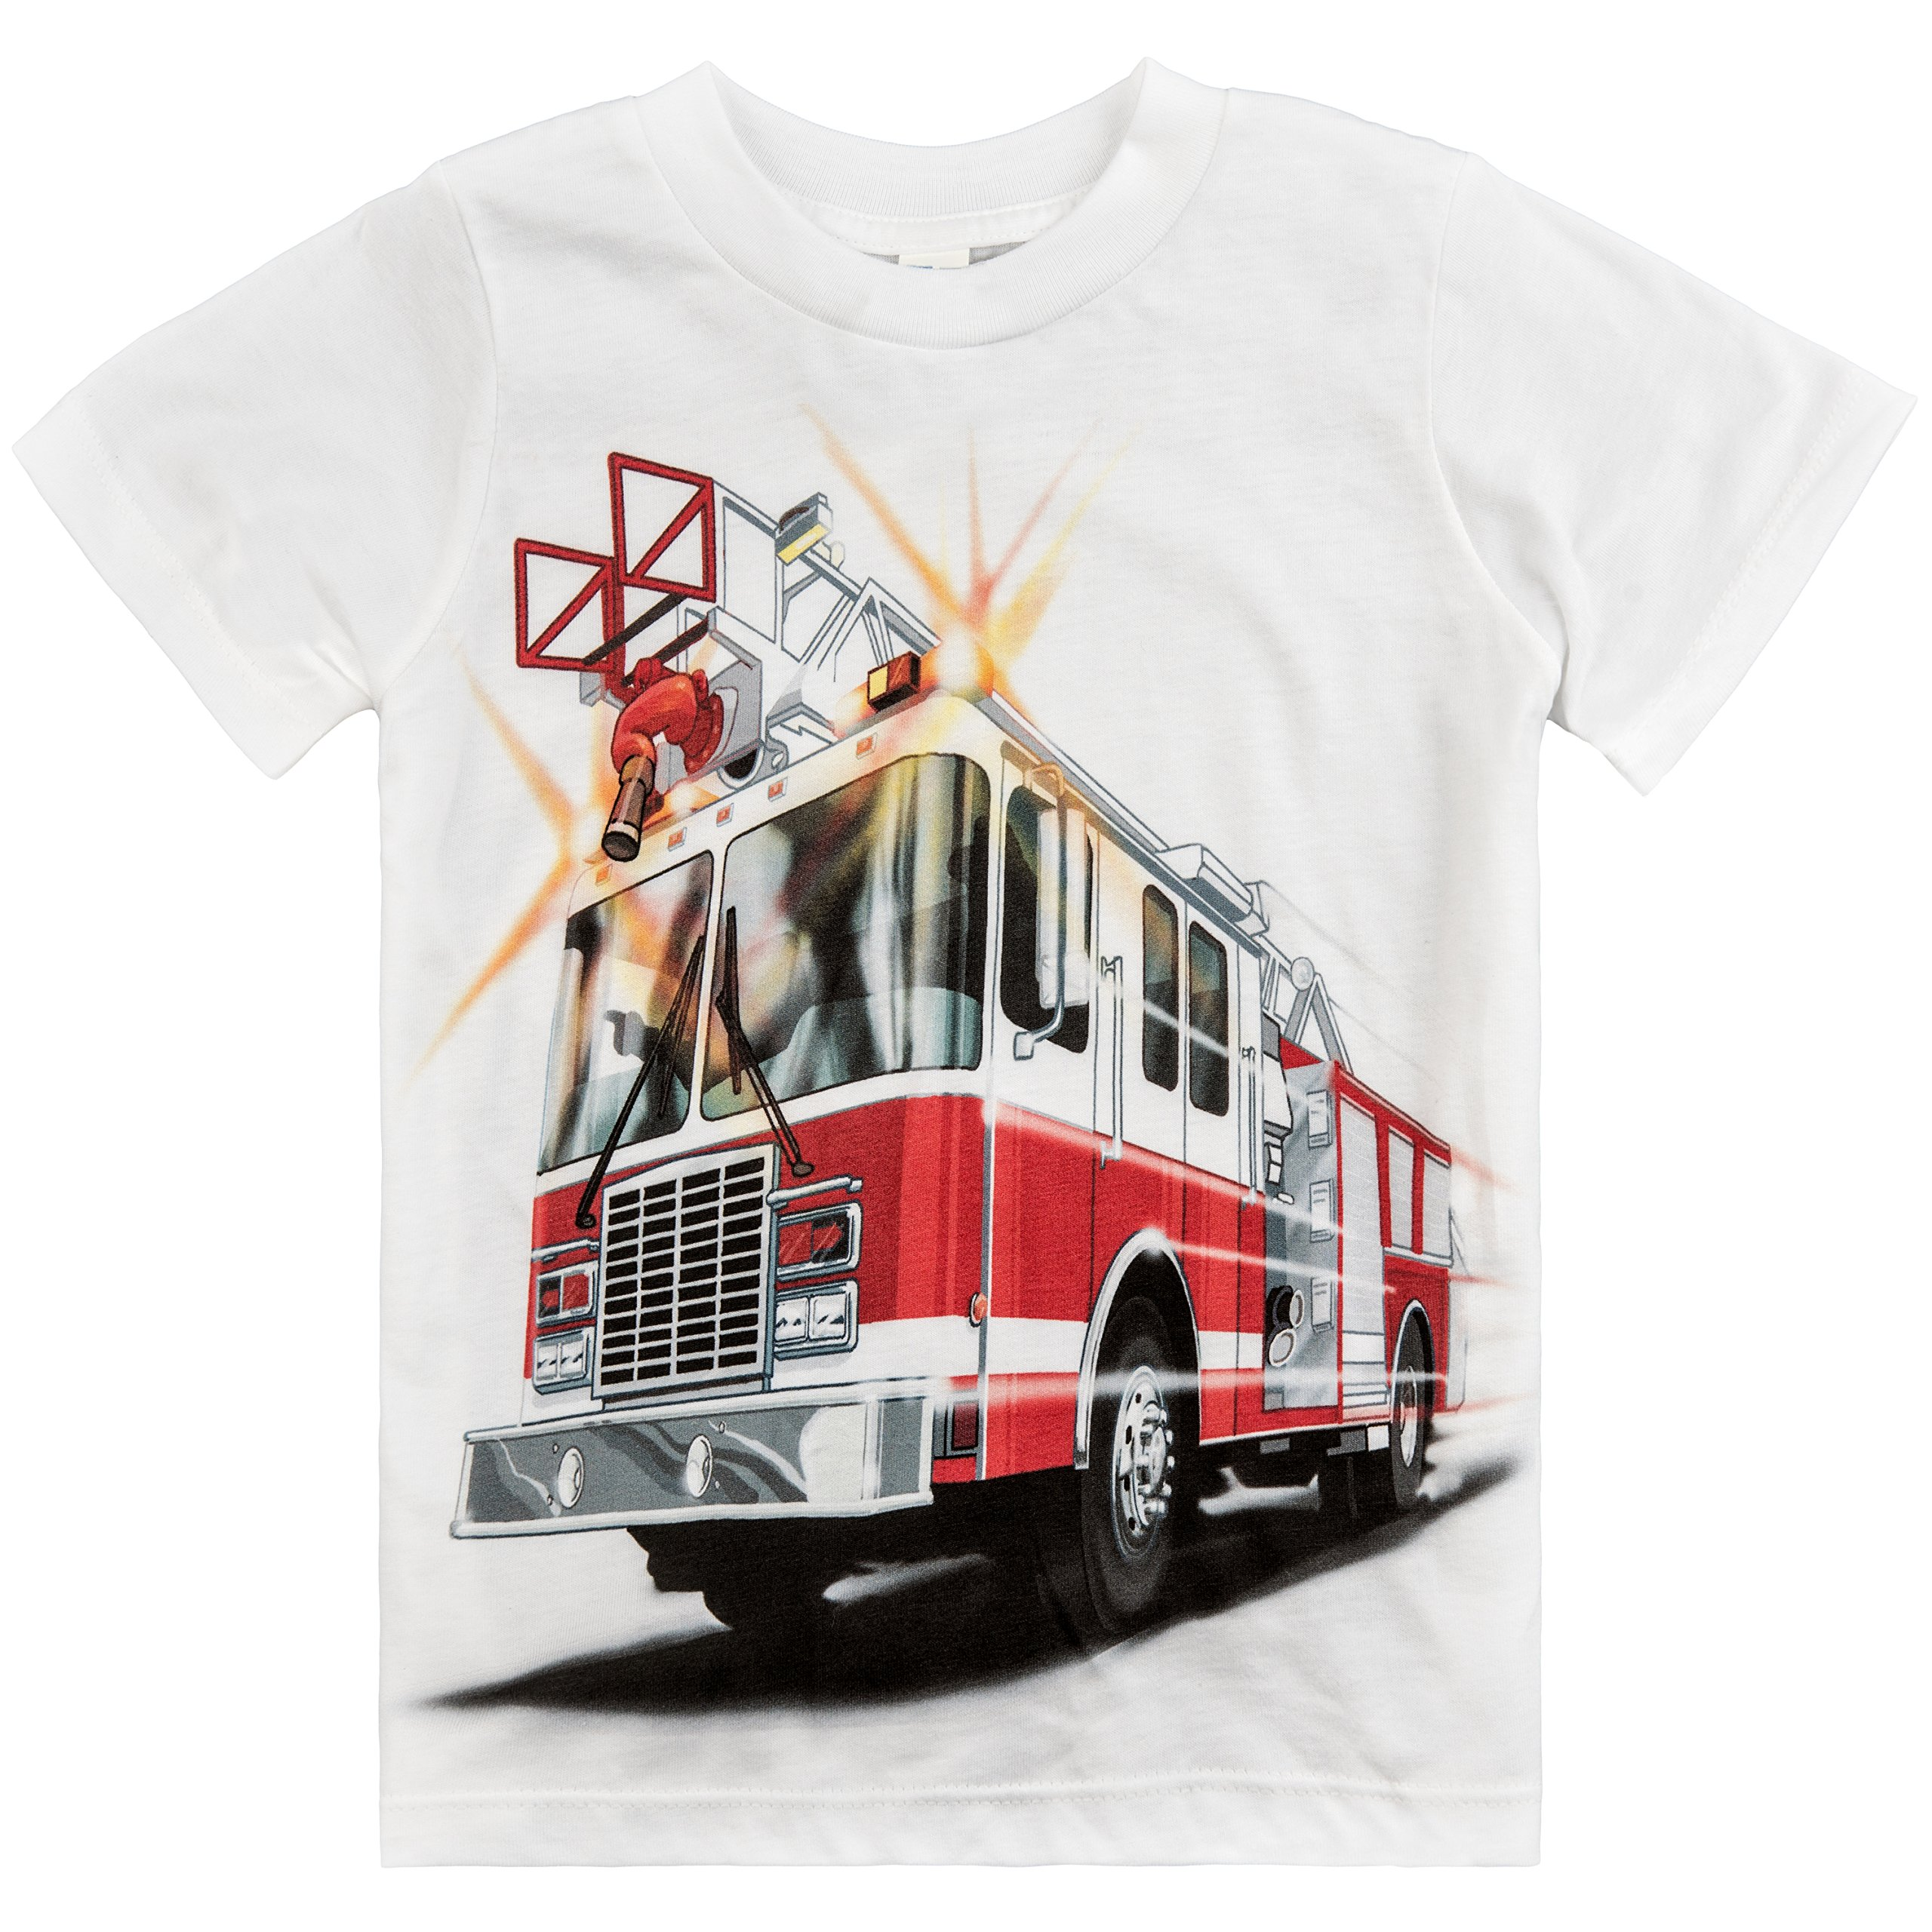 Shirts That Go Little Boys' Fire Truck T-Shirt